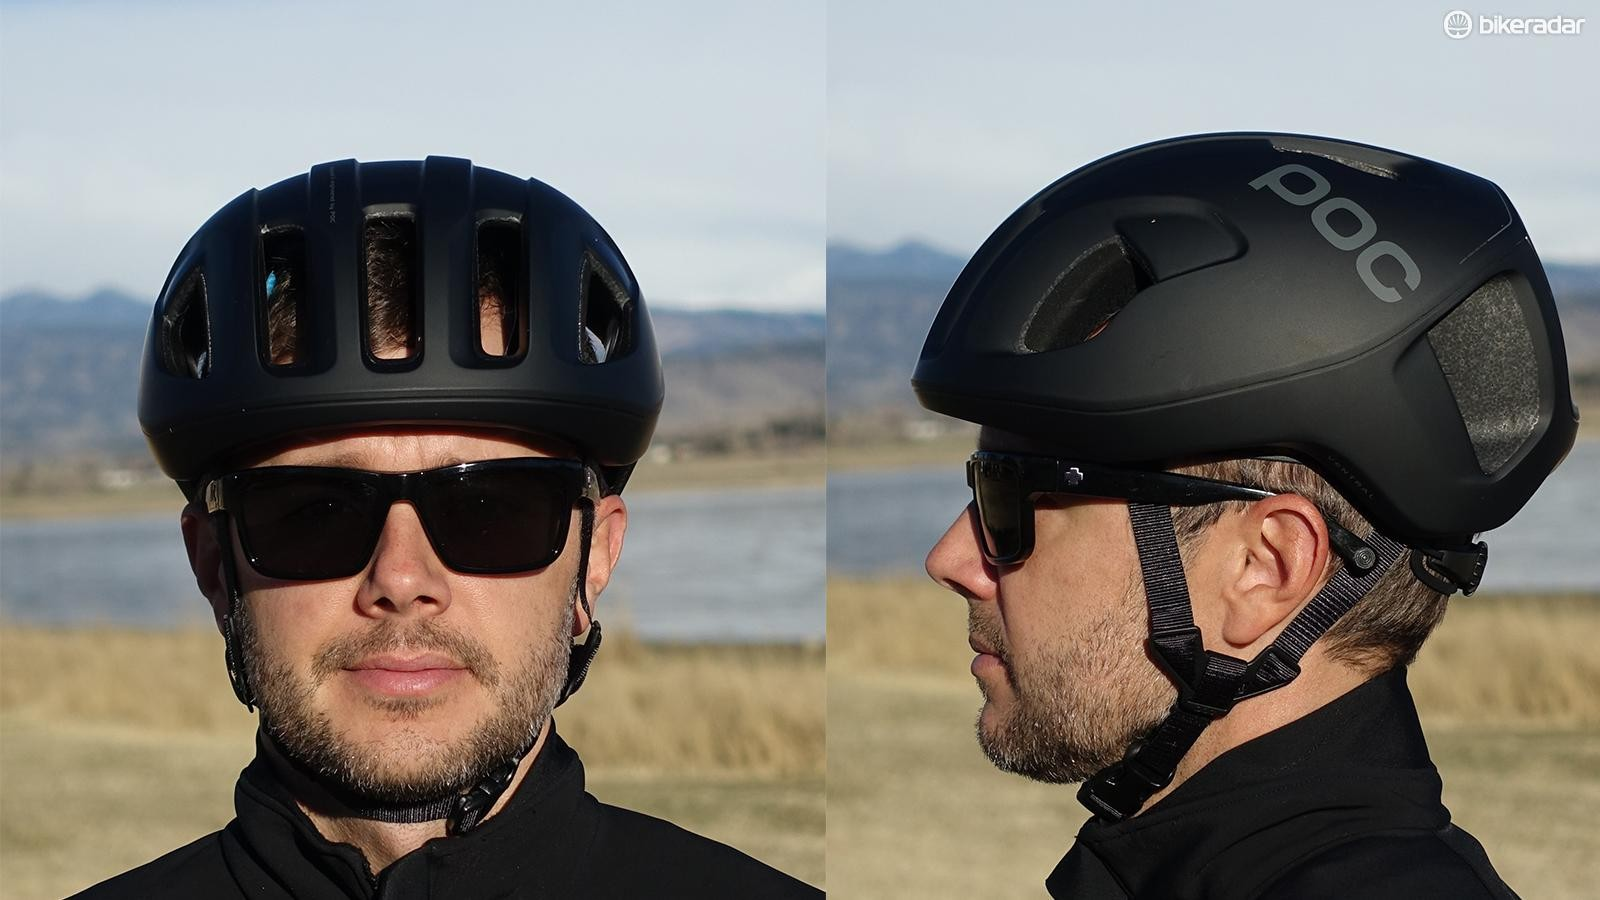 The size medium I tested runs a bit larger than a similar size from other helmet makers. Ventilation is exceptional though, as illustrated by the background seen through the helmet